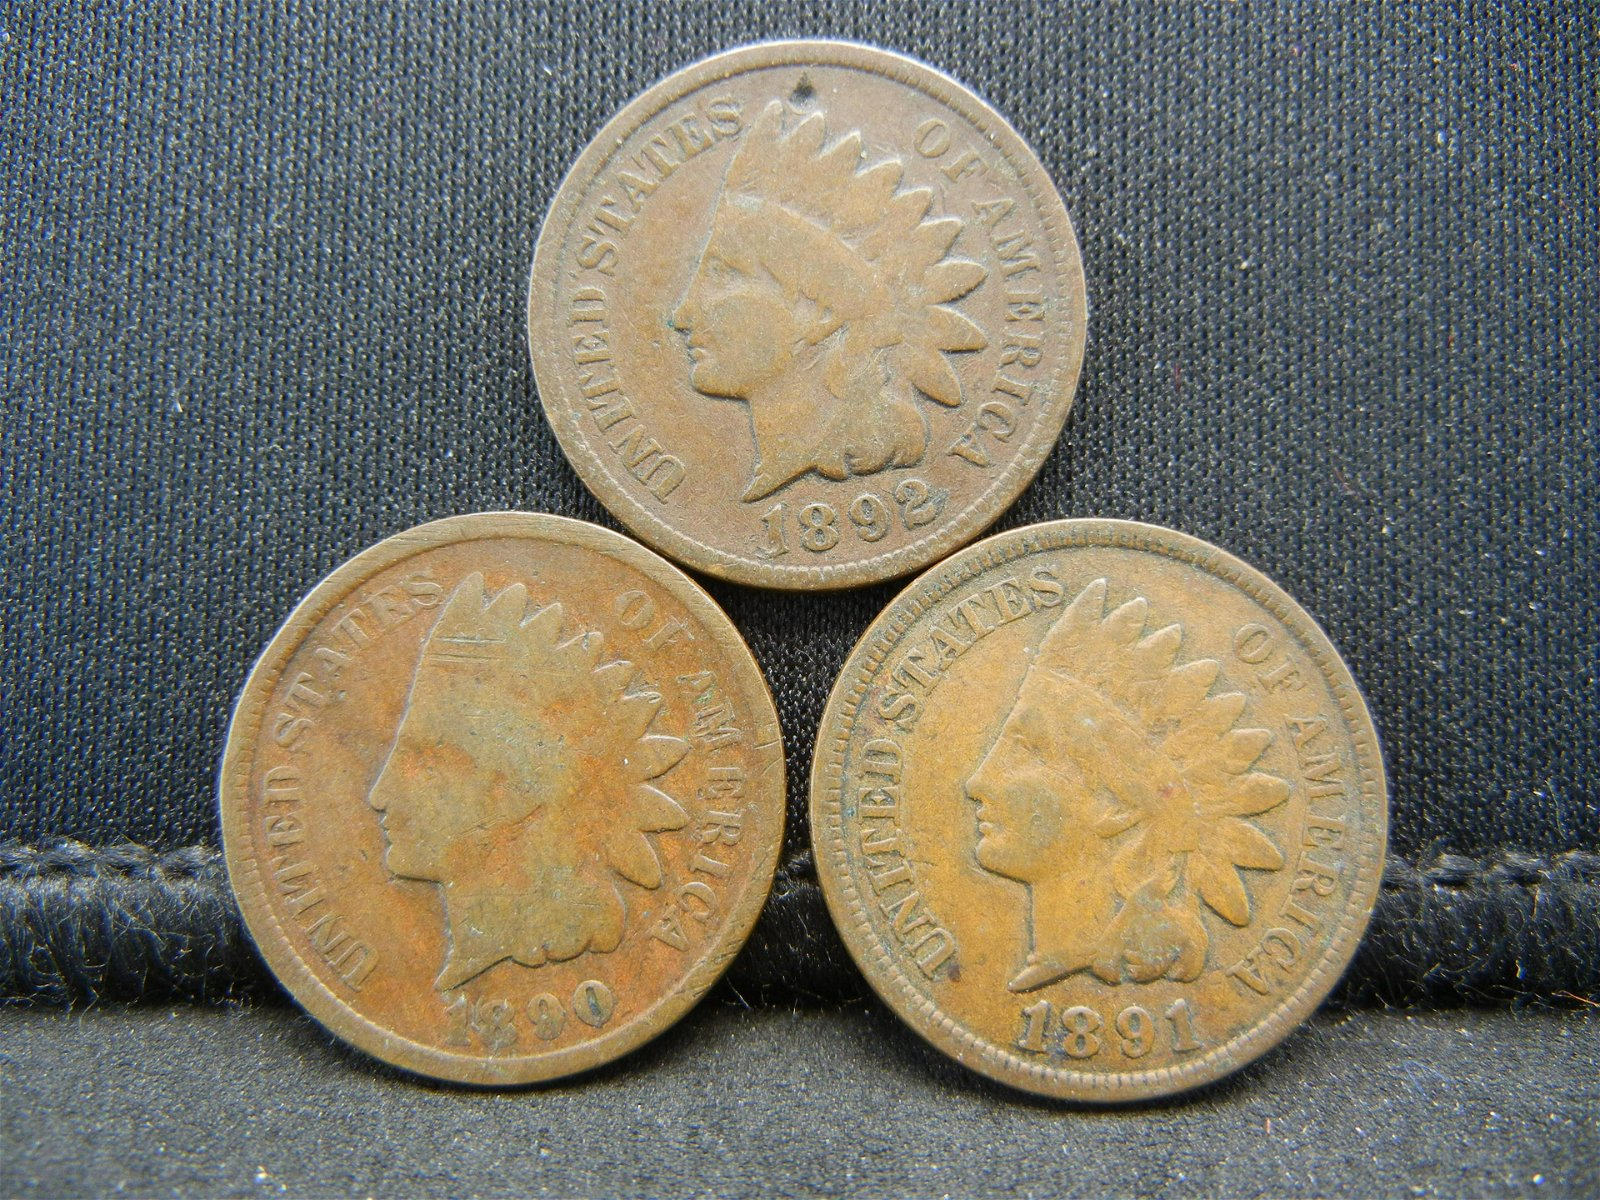 1890 1891 1892 Indian Head Cents.